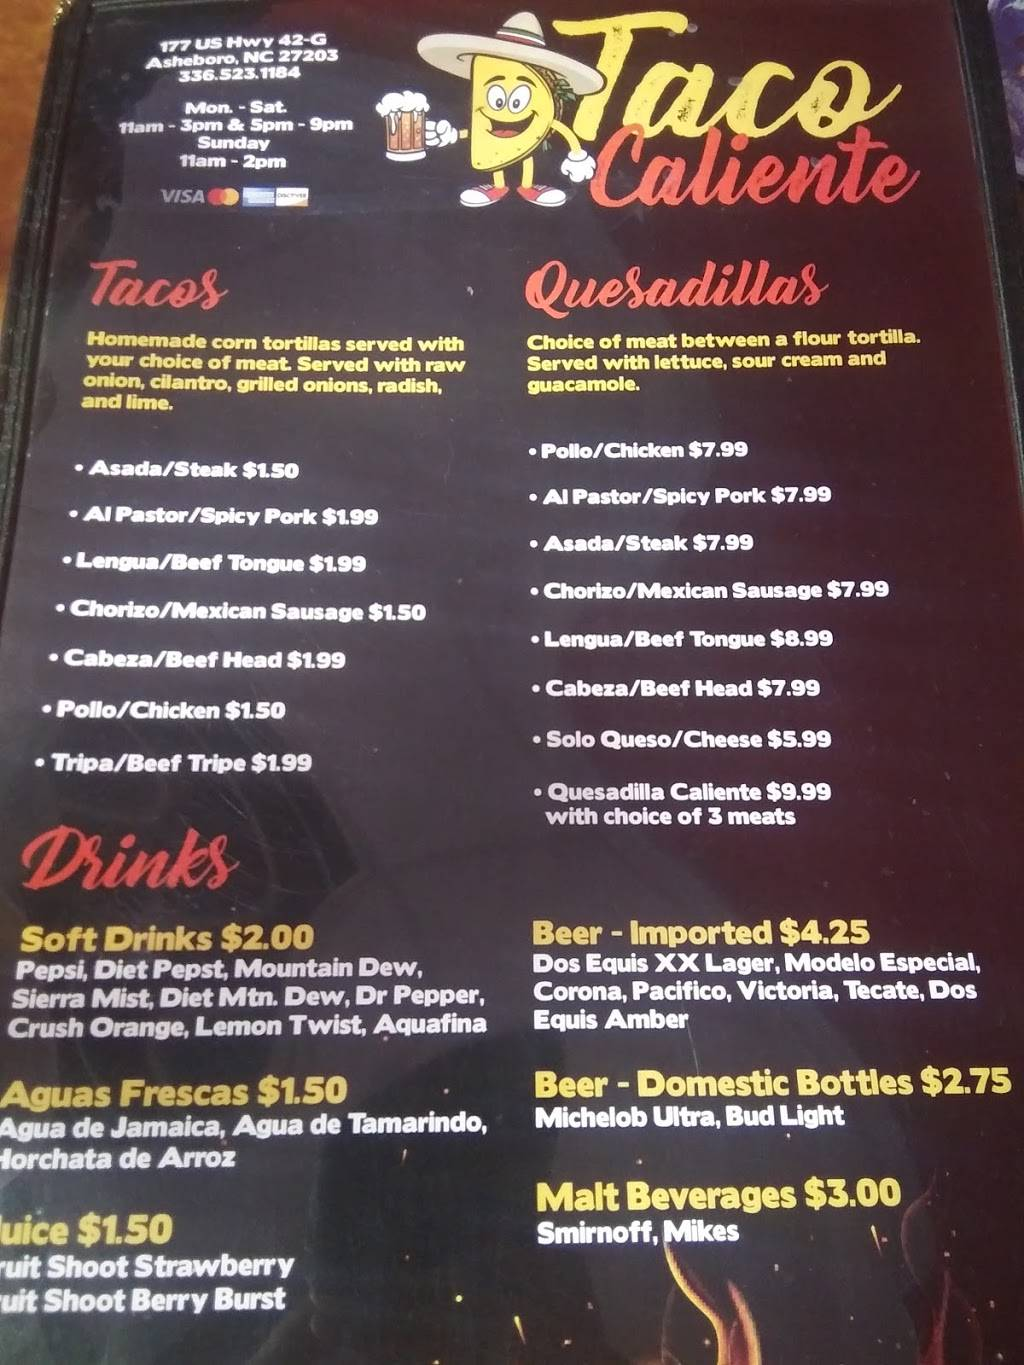 Taco caliente | restaurant | Asheboro, NC 27203, USA | 3365231184 OR +1 336-523-1184